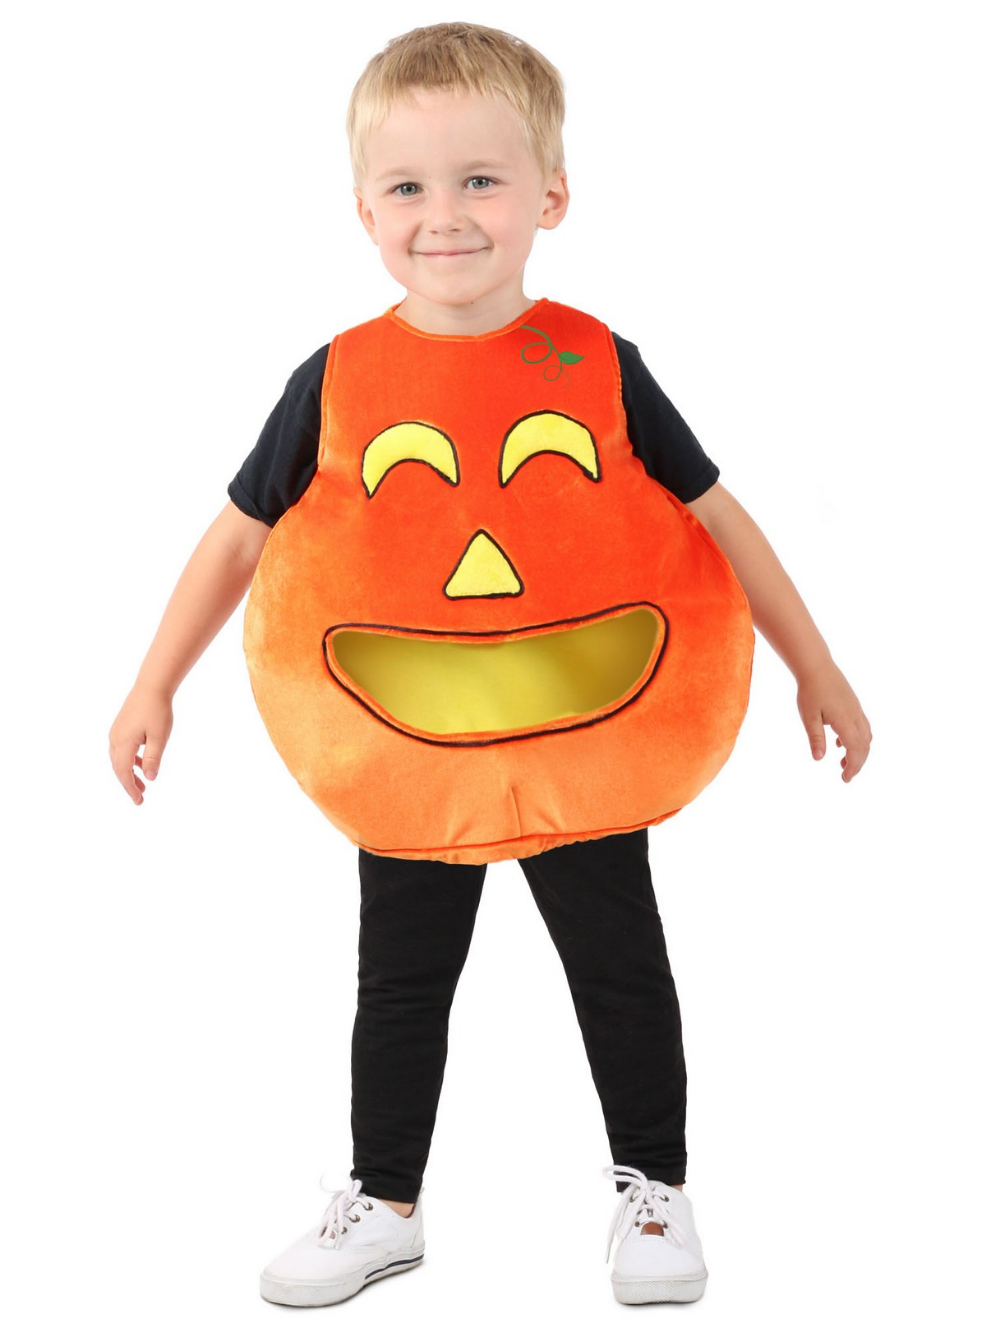 Child Feed Me™ Pumpkin Costume (With images) Pumpkin